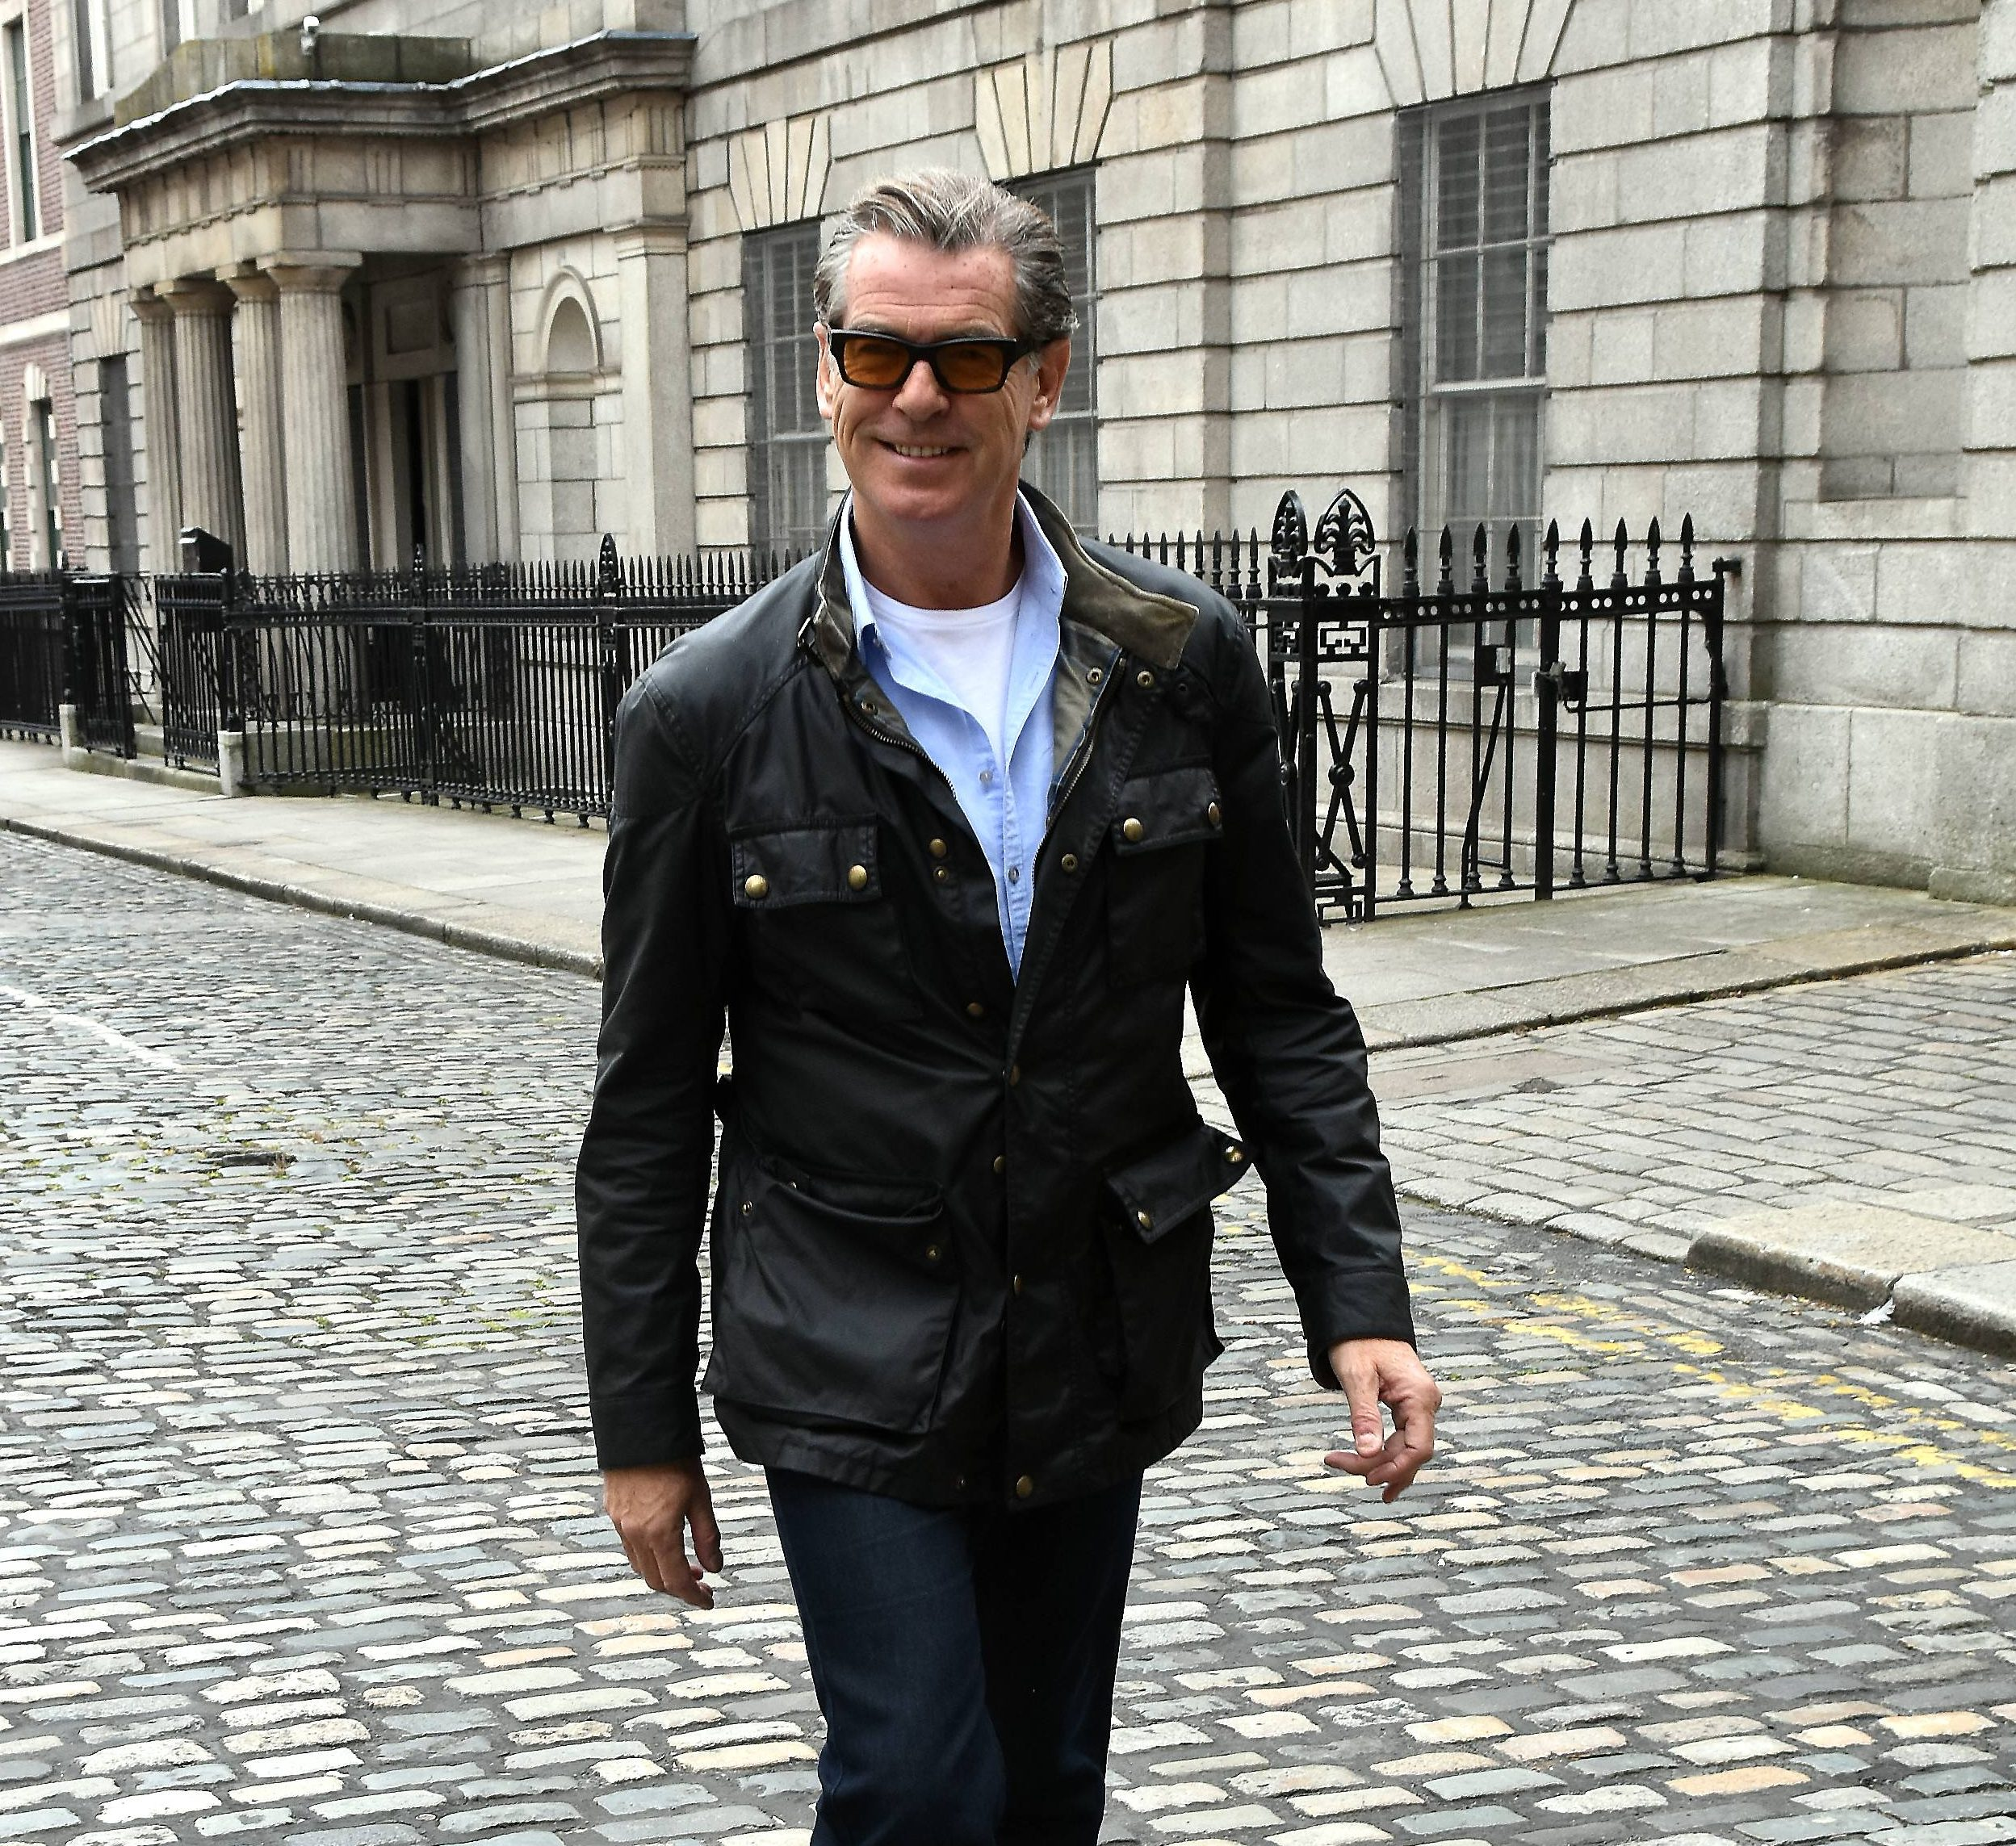 Bond in trouble: Pierce Brosnan asked to explain 'Pan Bahar' advert